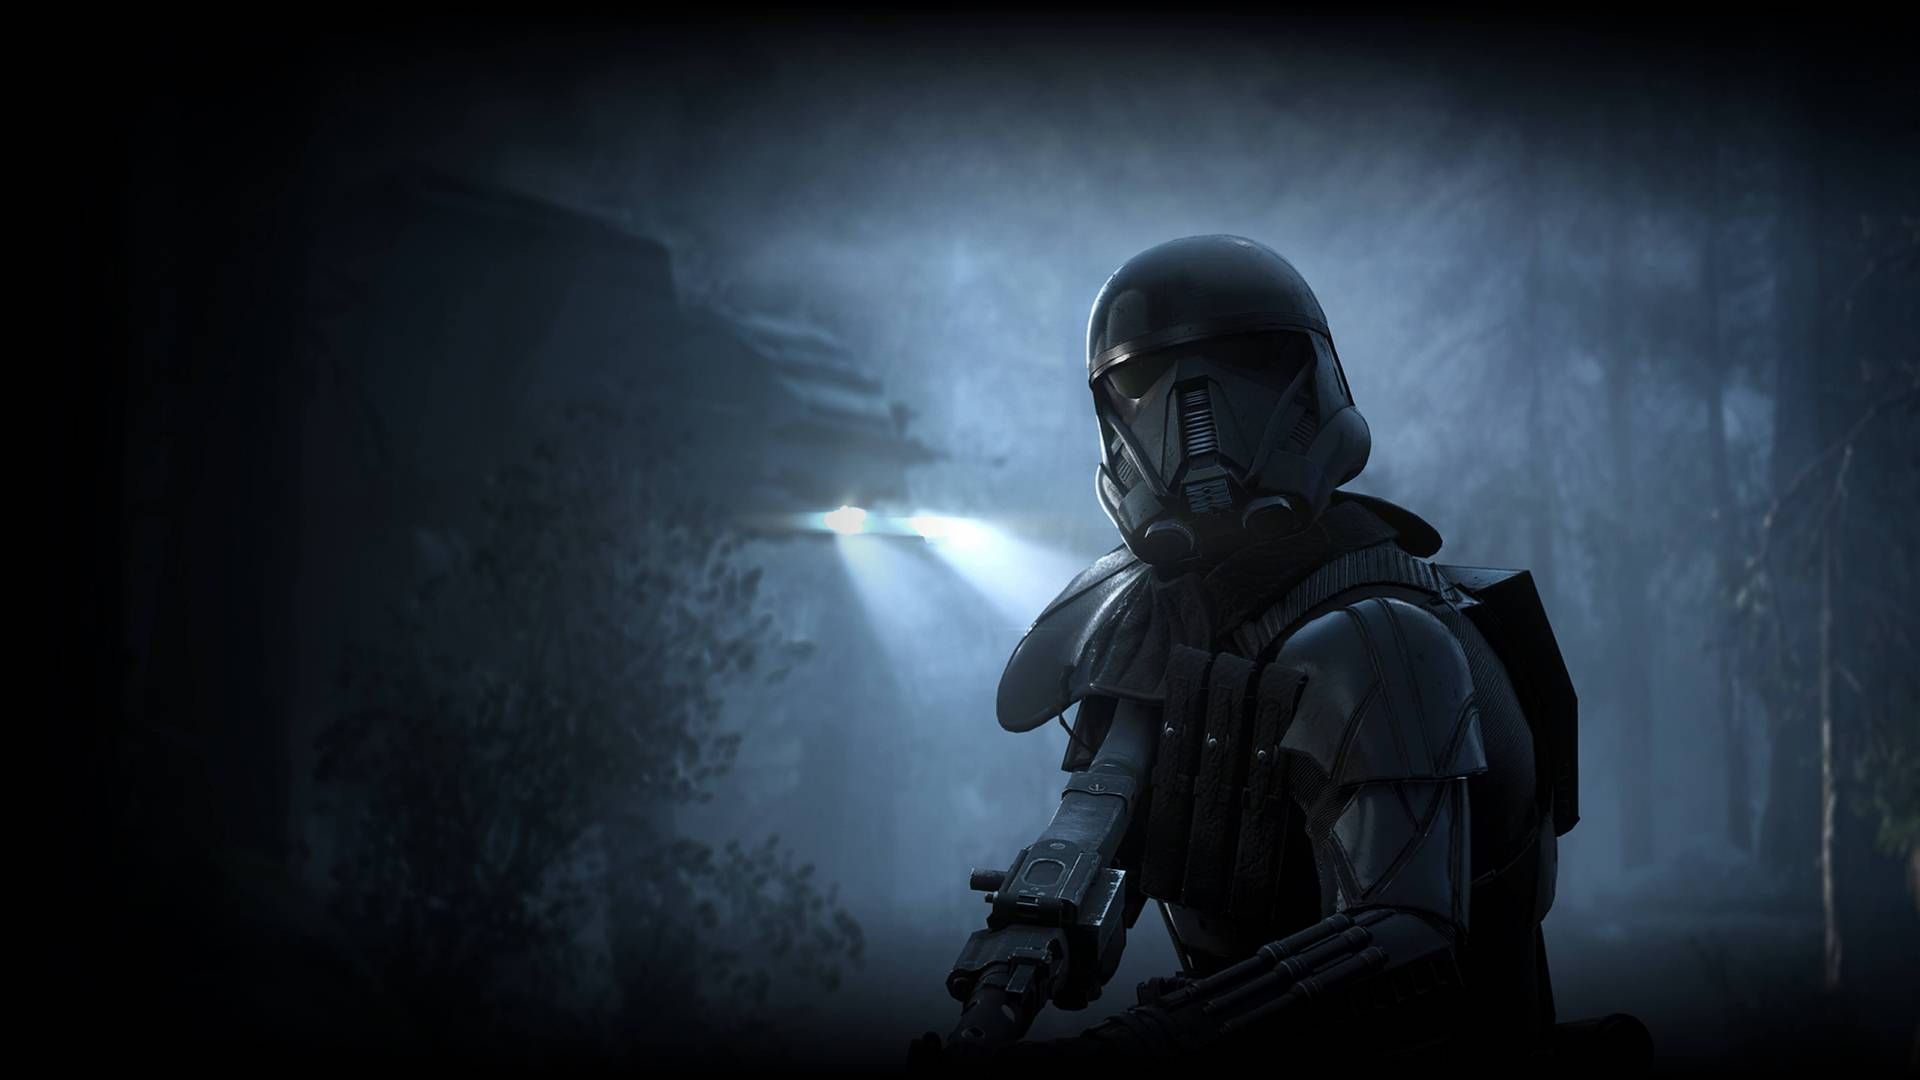 Battlefront Wallpapers Top Free Battlefront Backgrounds